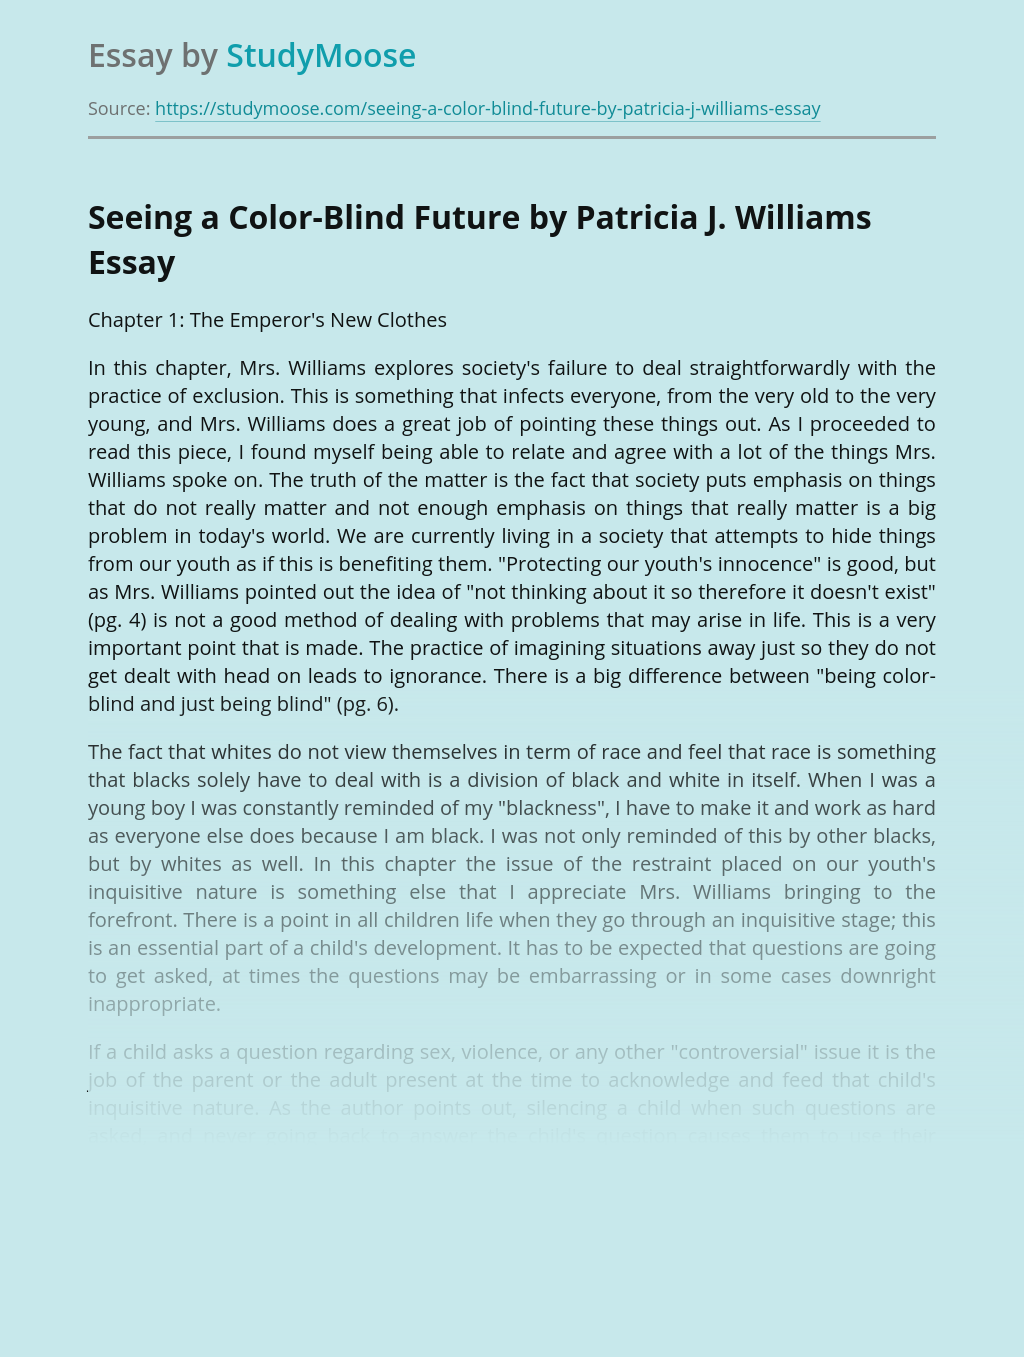 Seeing a Color-Blind Future by Patricia J. Williams